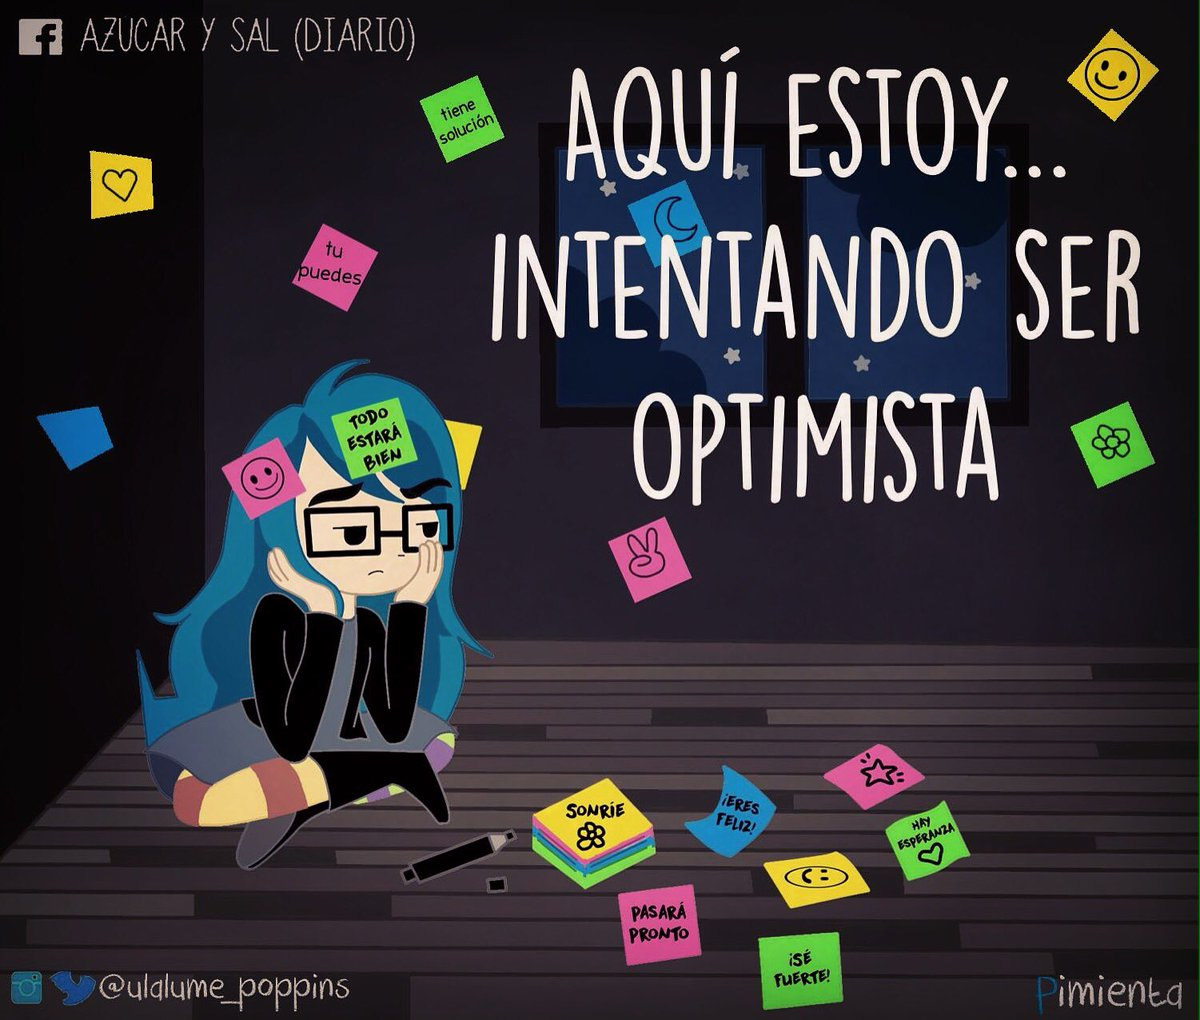 #Pimienta Intentando ser optimista #azucarysal